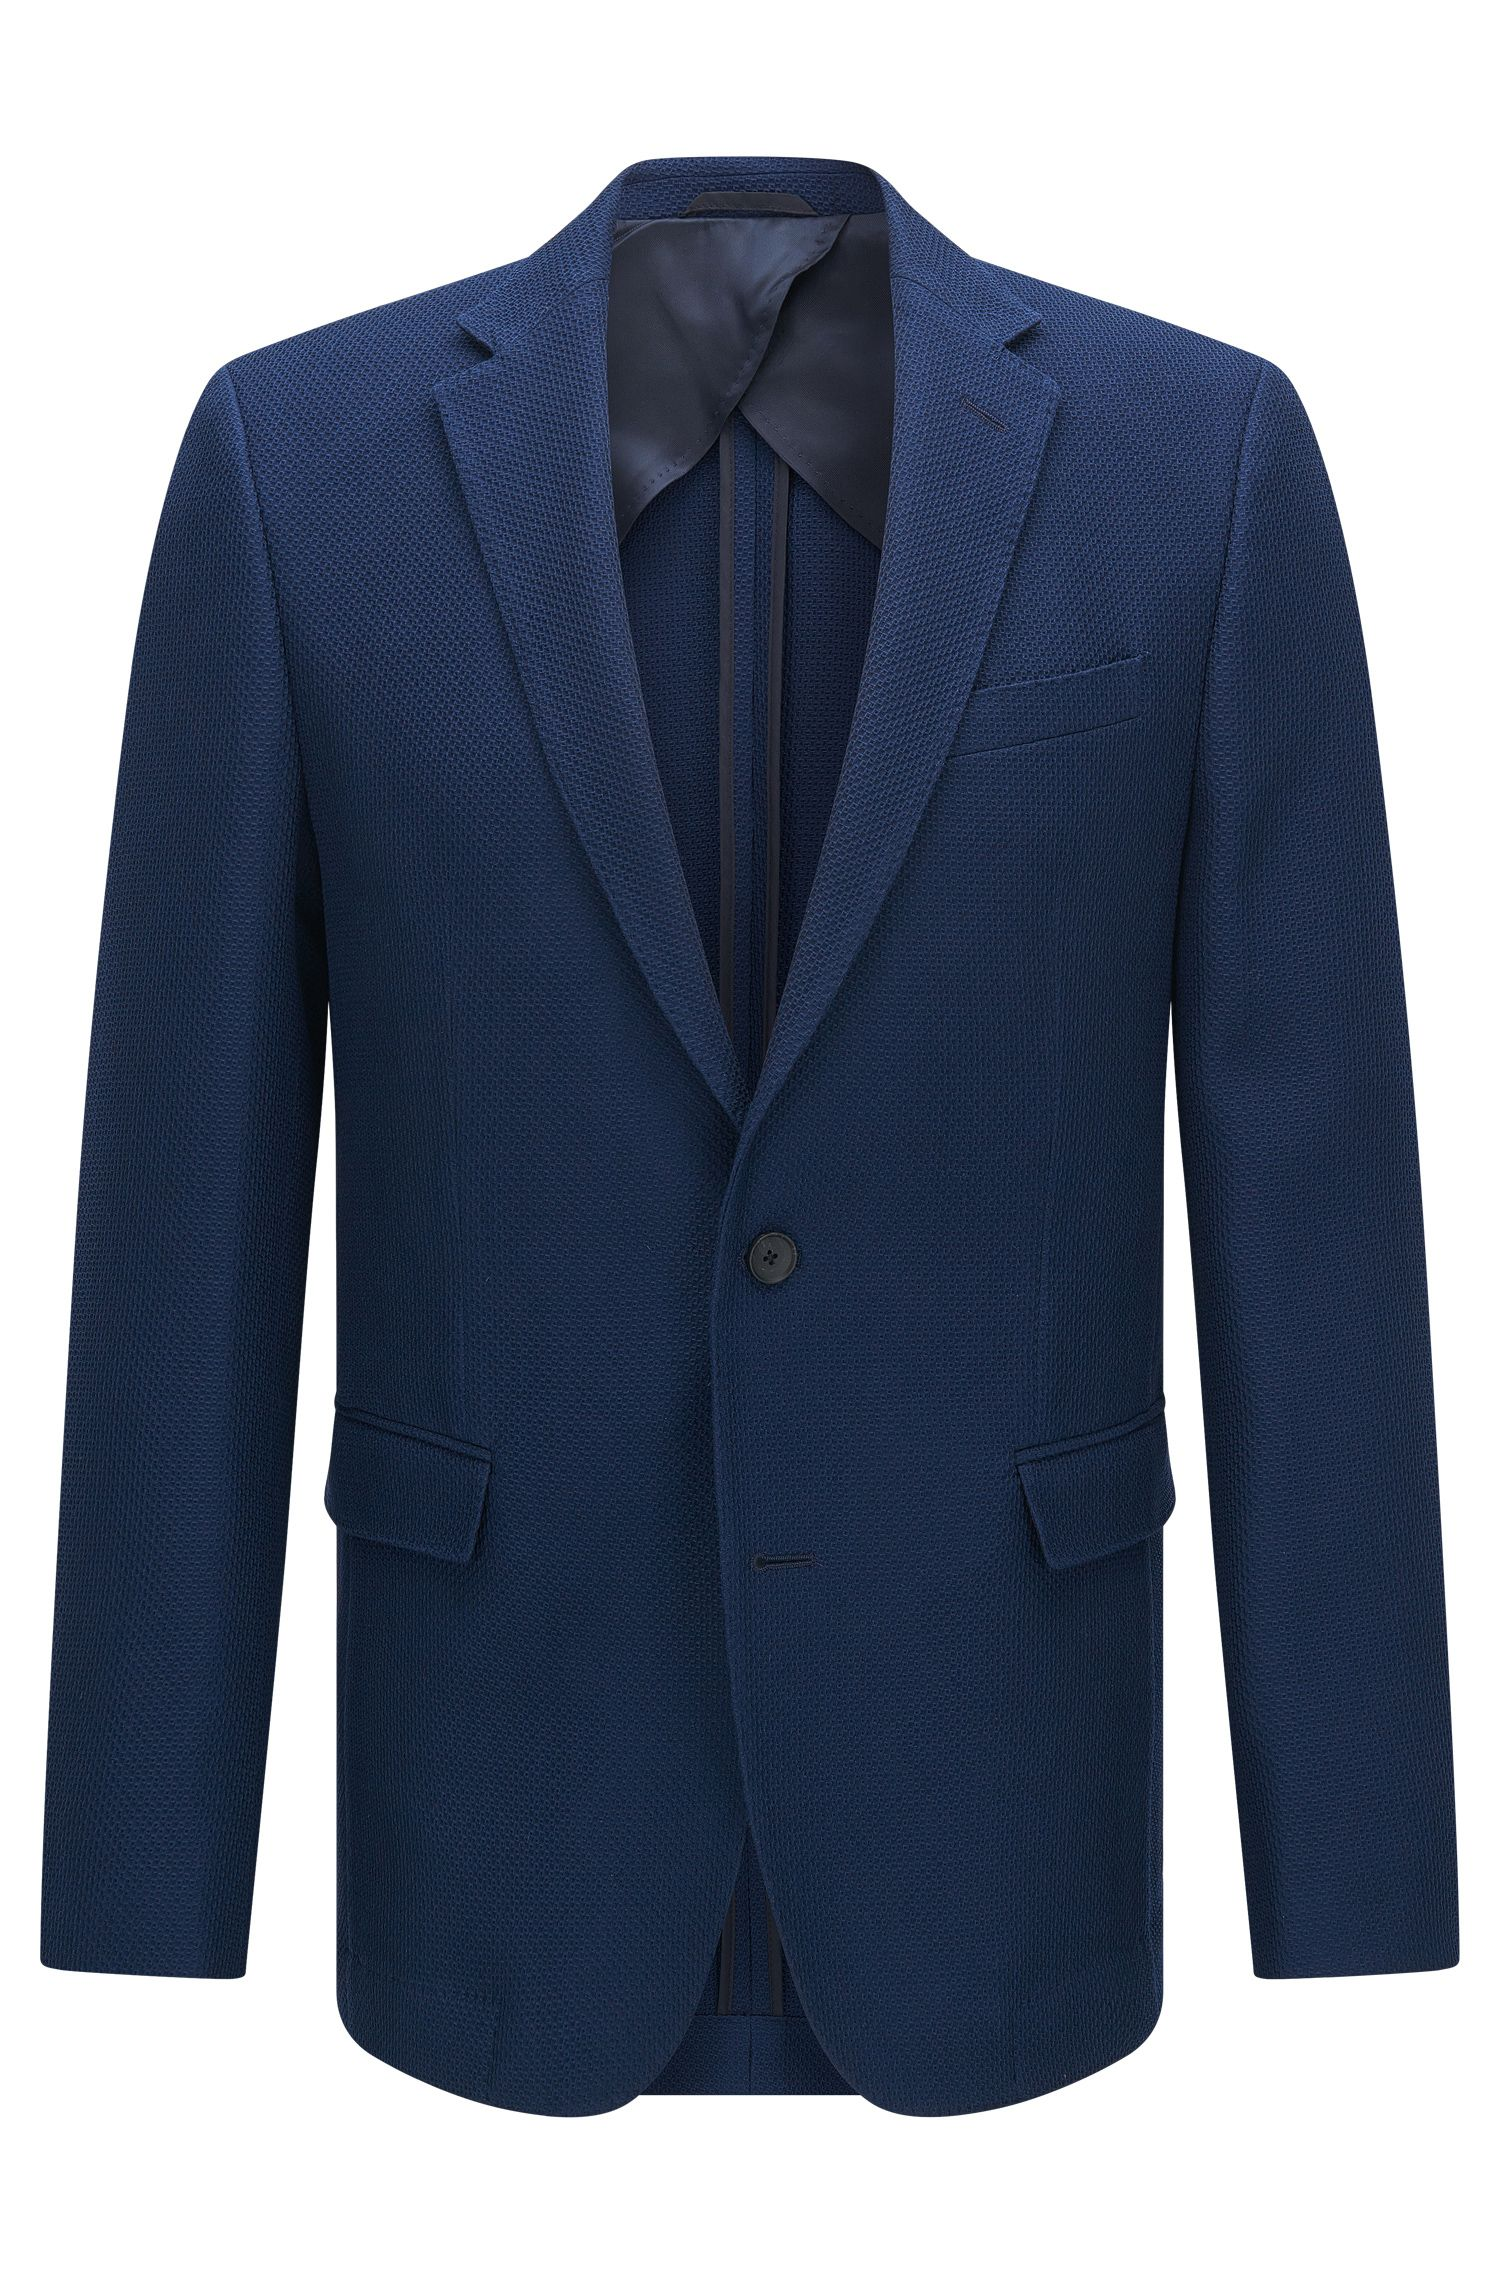 Virgin Wool Cotton Sport Coat, Slim Fit | Nobis